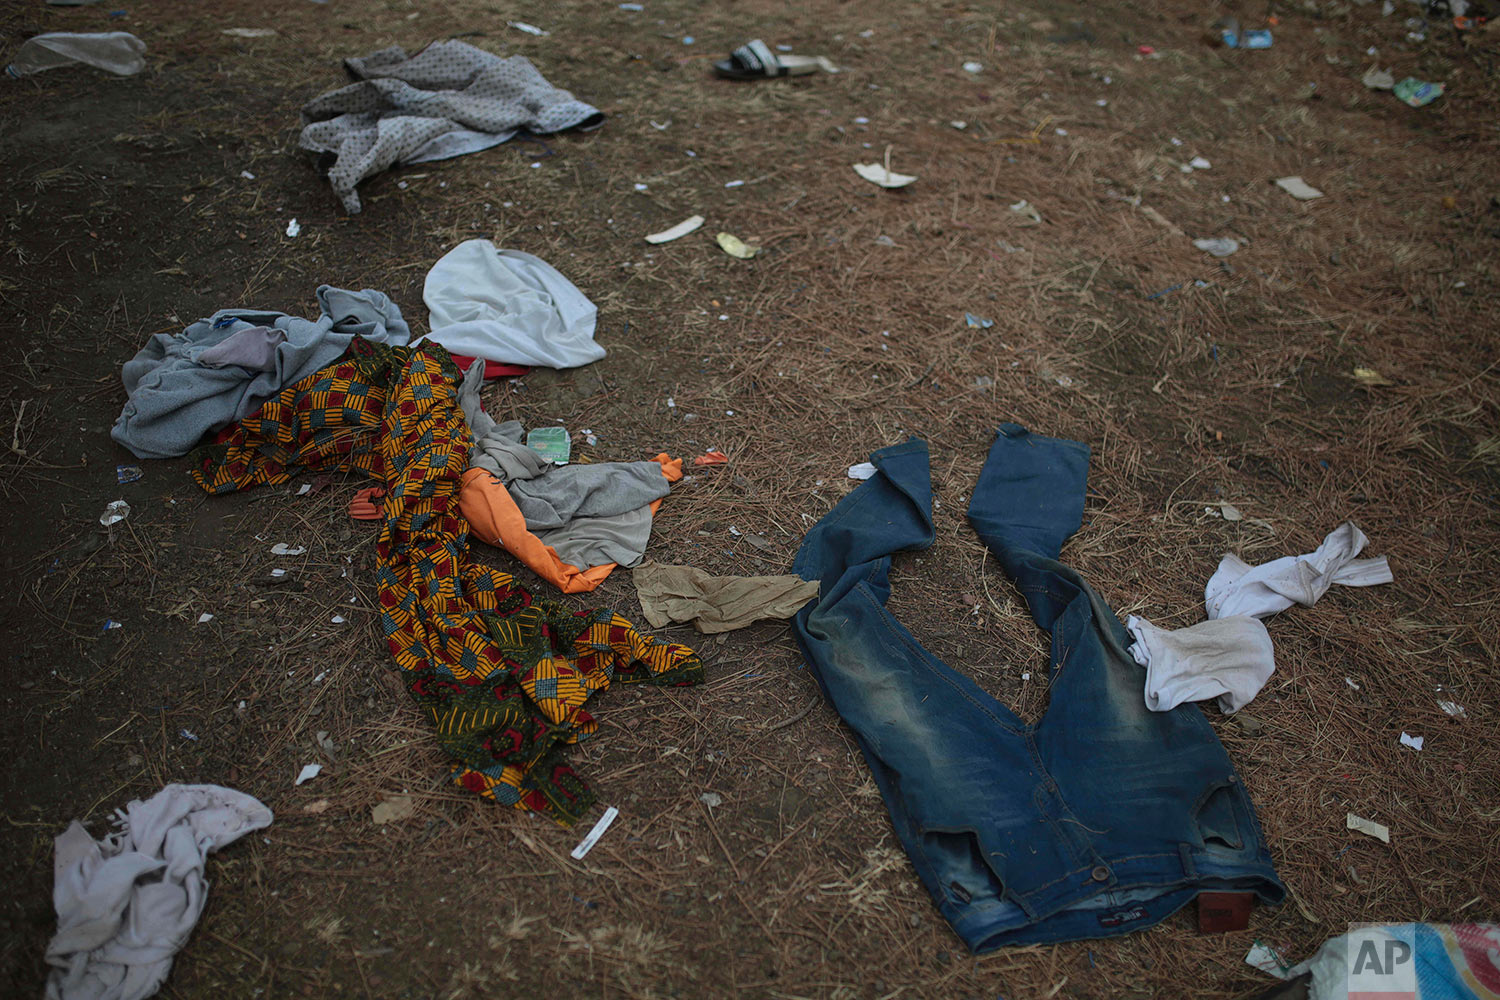 Clothes belonging to sub-Saharan migrants aiming to cross to Europe are scattered on in a forest following a police raid, near Masnana, Sept. 8, 2018, on the outskirts of Tangier, Morocco. (AP Photo/Mosa'ab Elshamy)